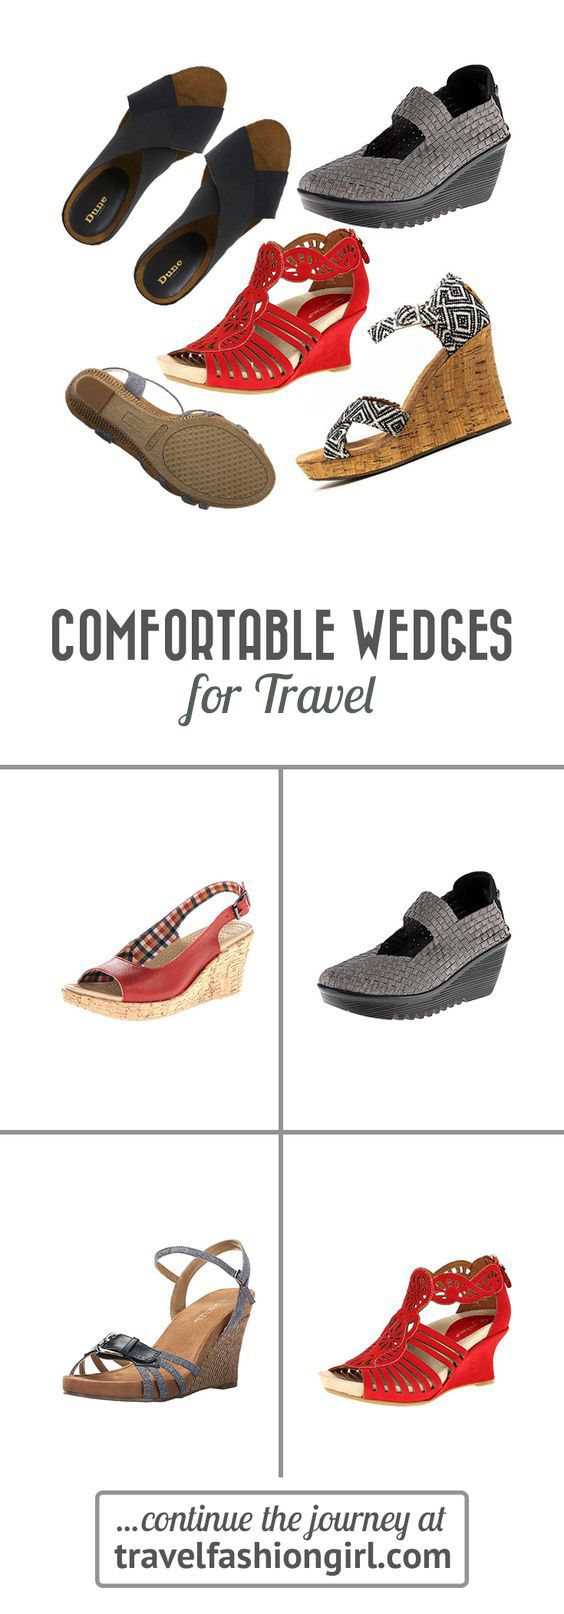 94a6e9484b72 One of our readers asked us for the most comfortable wedges for travel so  we turned